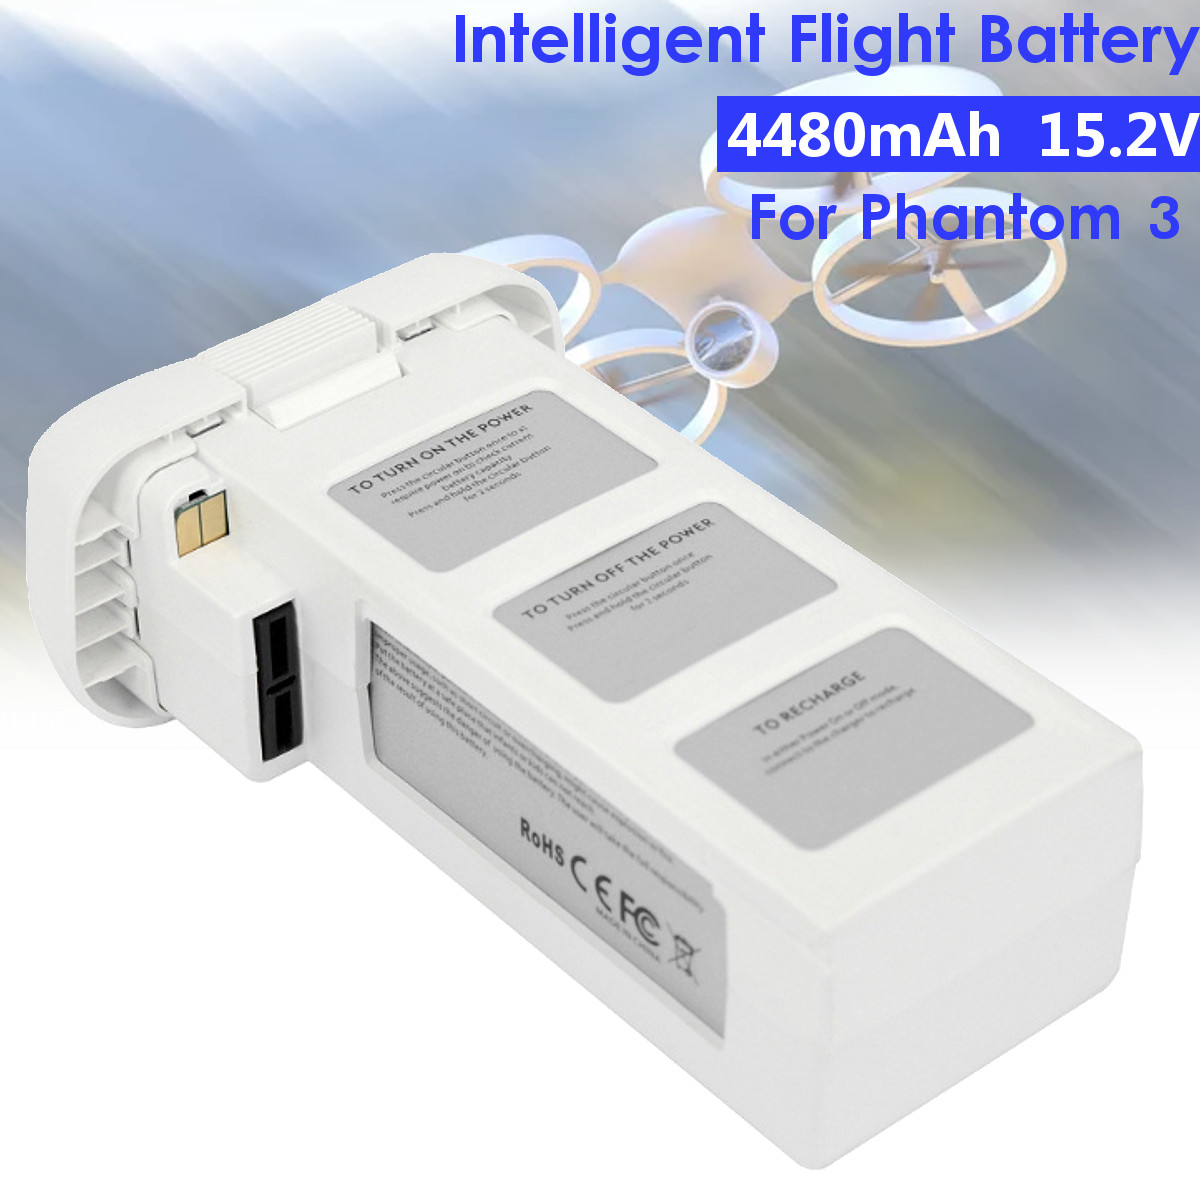 For DJI Phantom 2 3 4480mAh 5200mAh Drone Batterys Upgraded Large Capacity Spare Battery Vision + Quadcopter 66.6Wh 10C